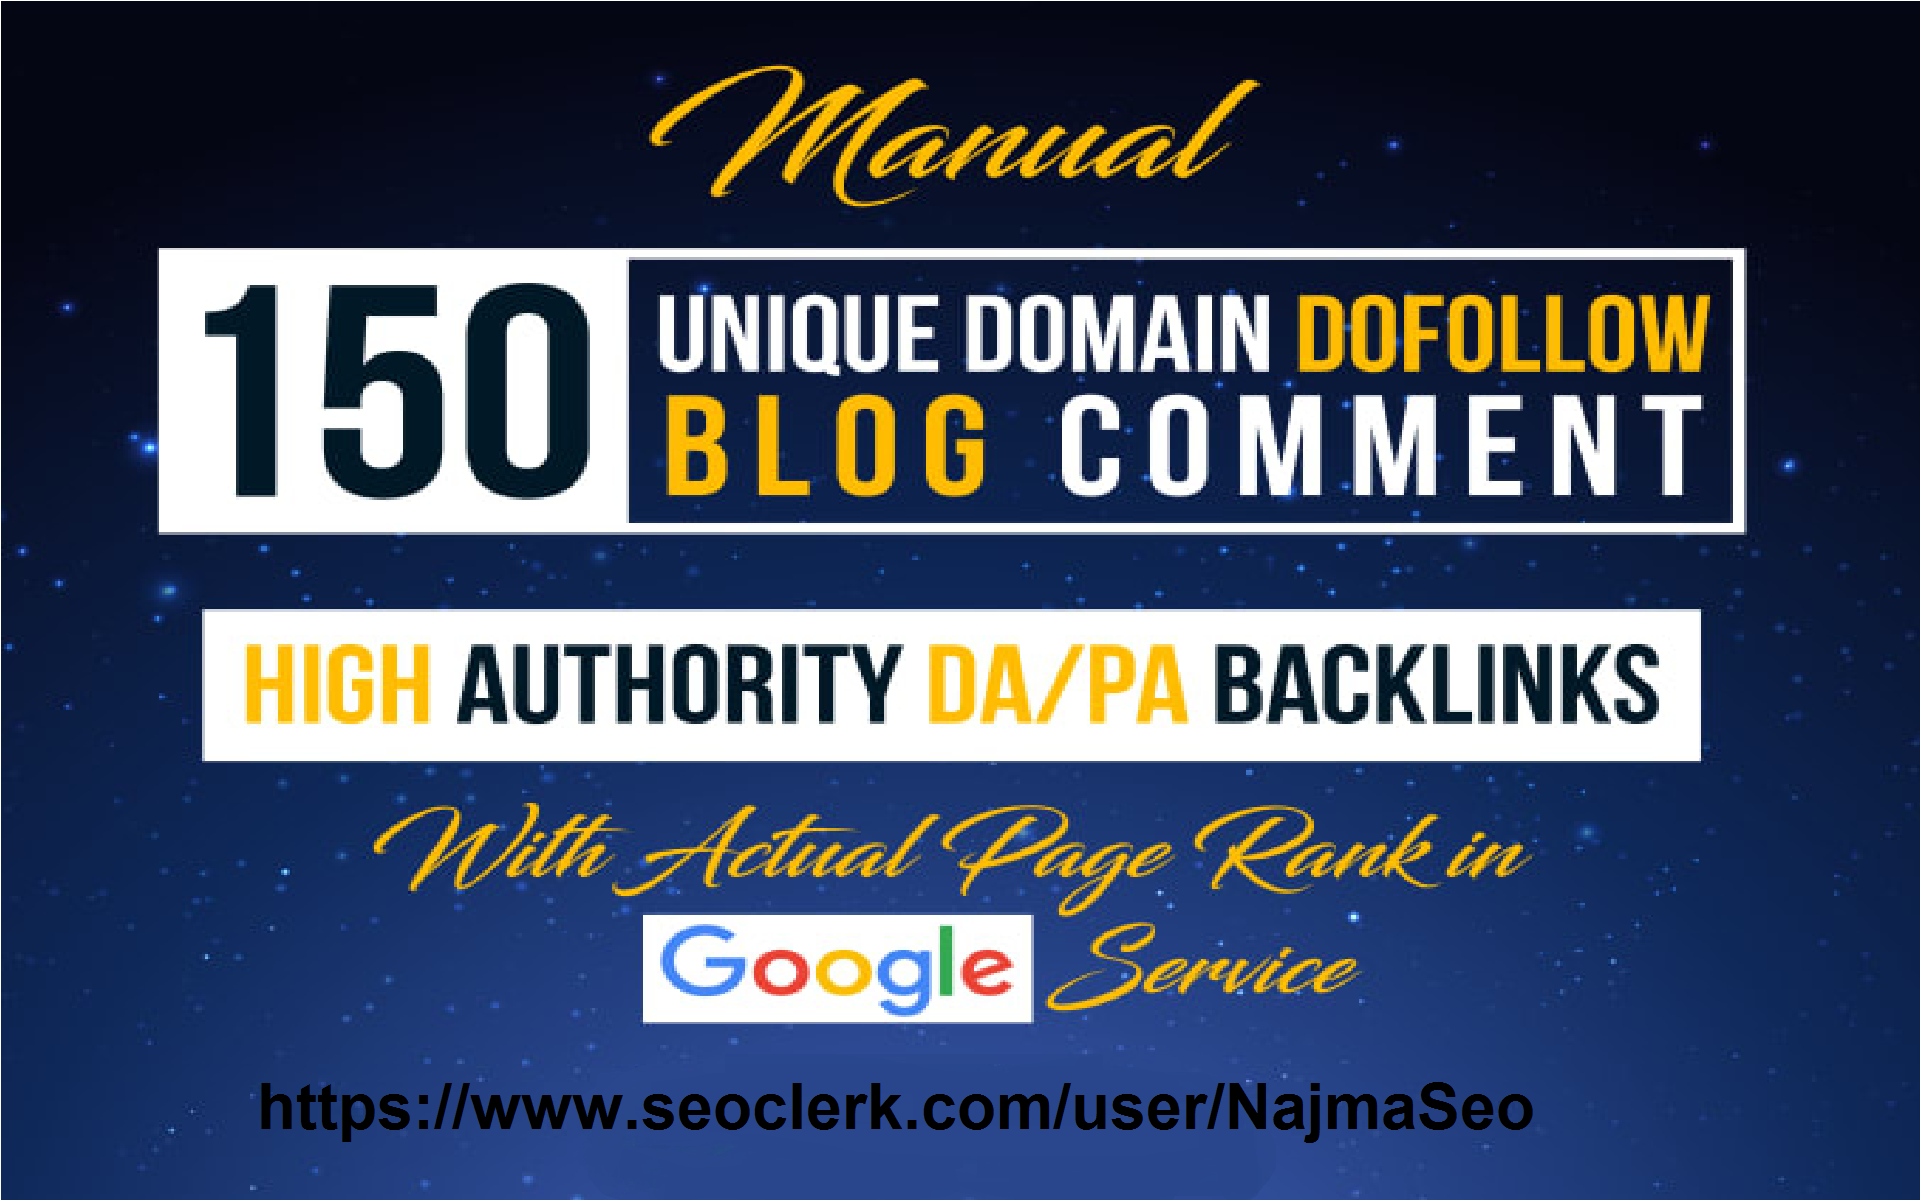 i will Create 150 unique dofollow blog comments on autual Page